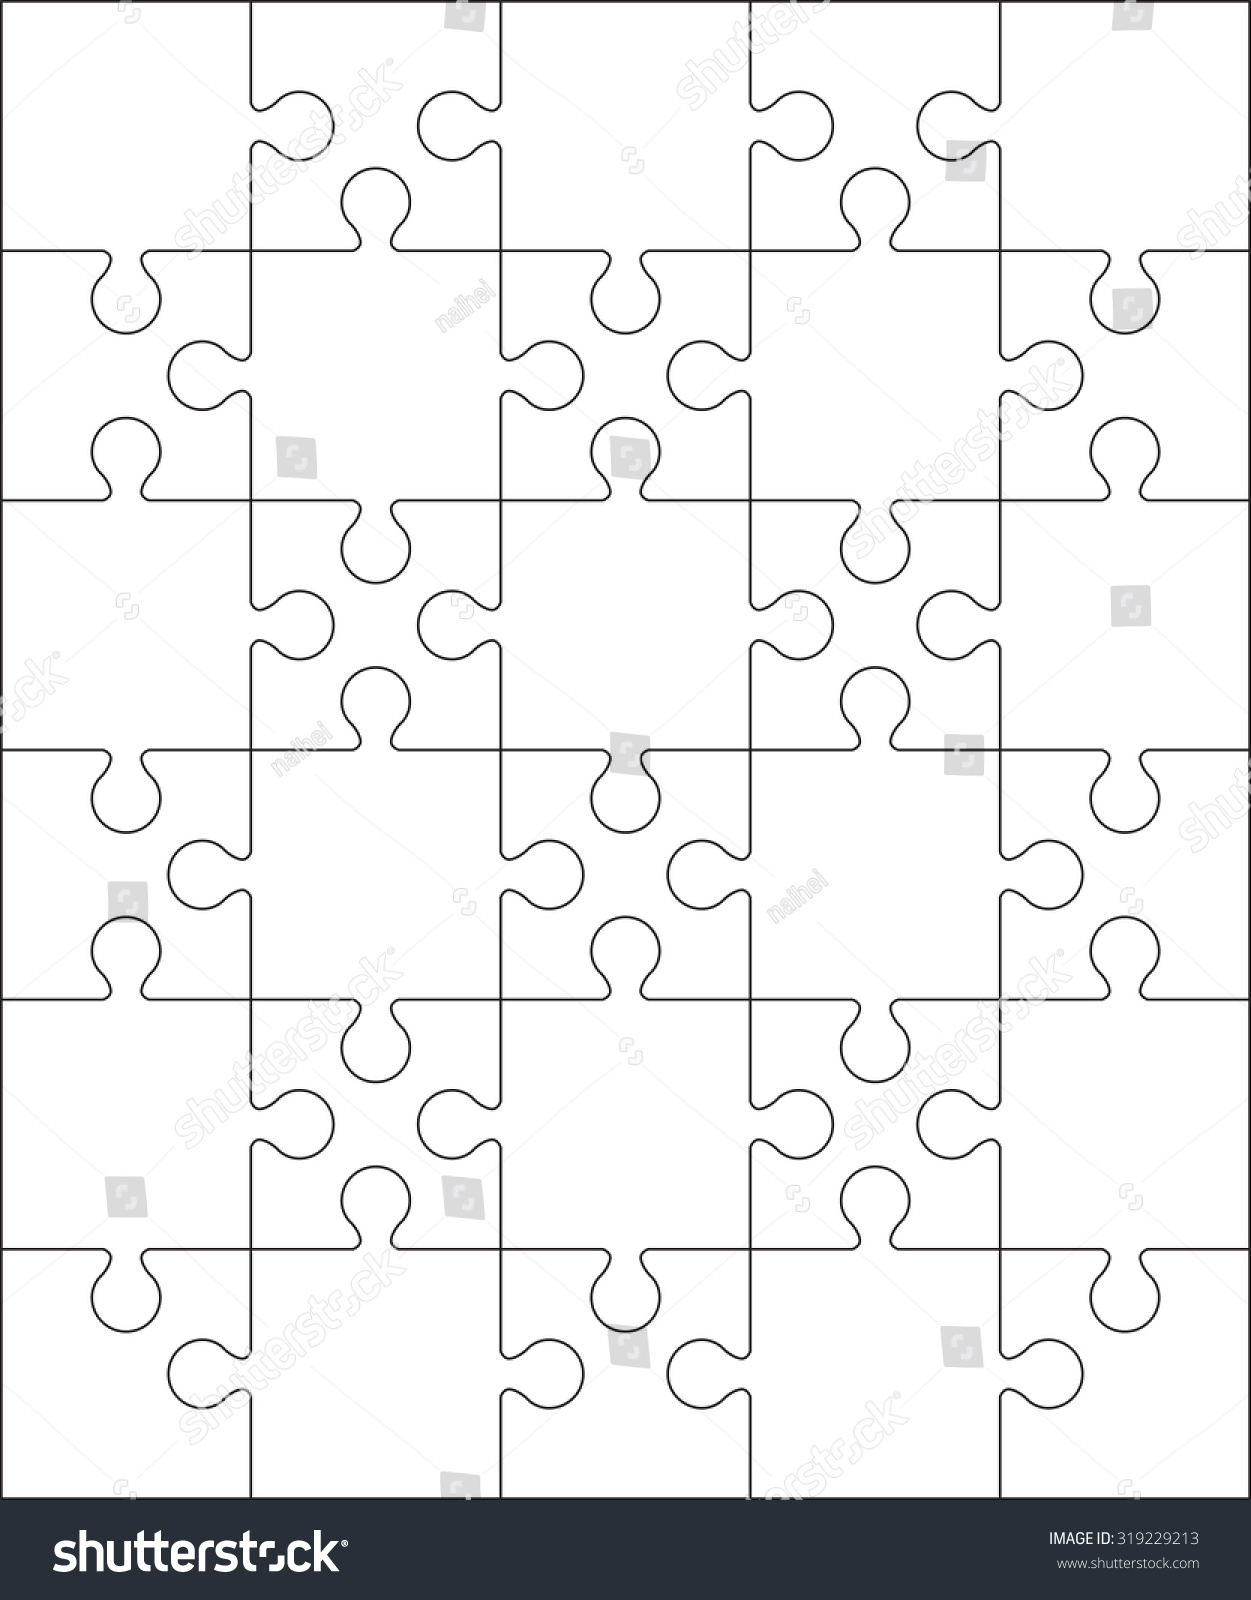 30 Jigsaw Puzzle Blank Template Cutting Stock Photo (Photo, Vector ...